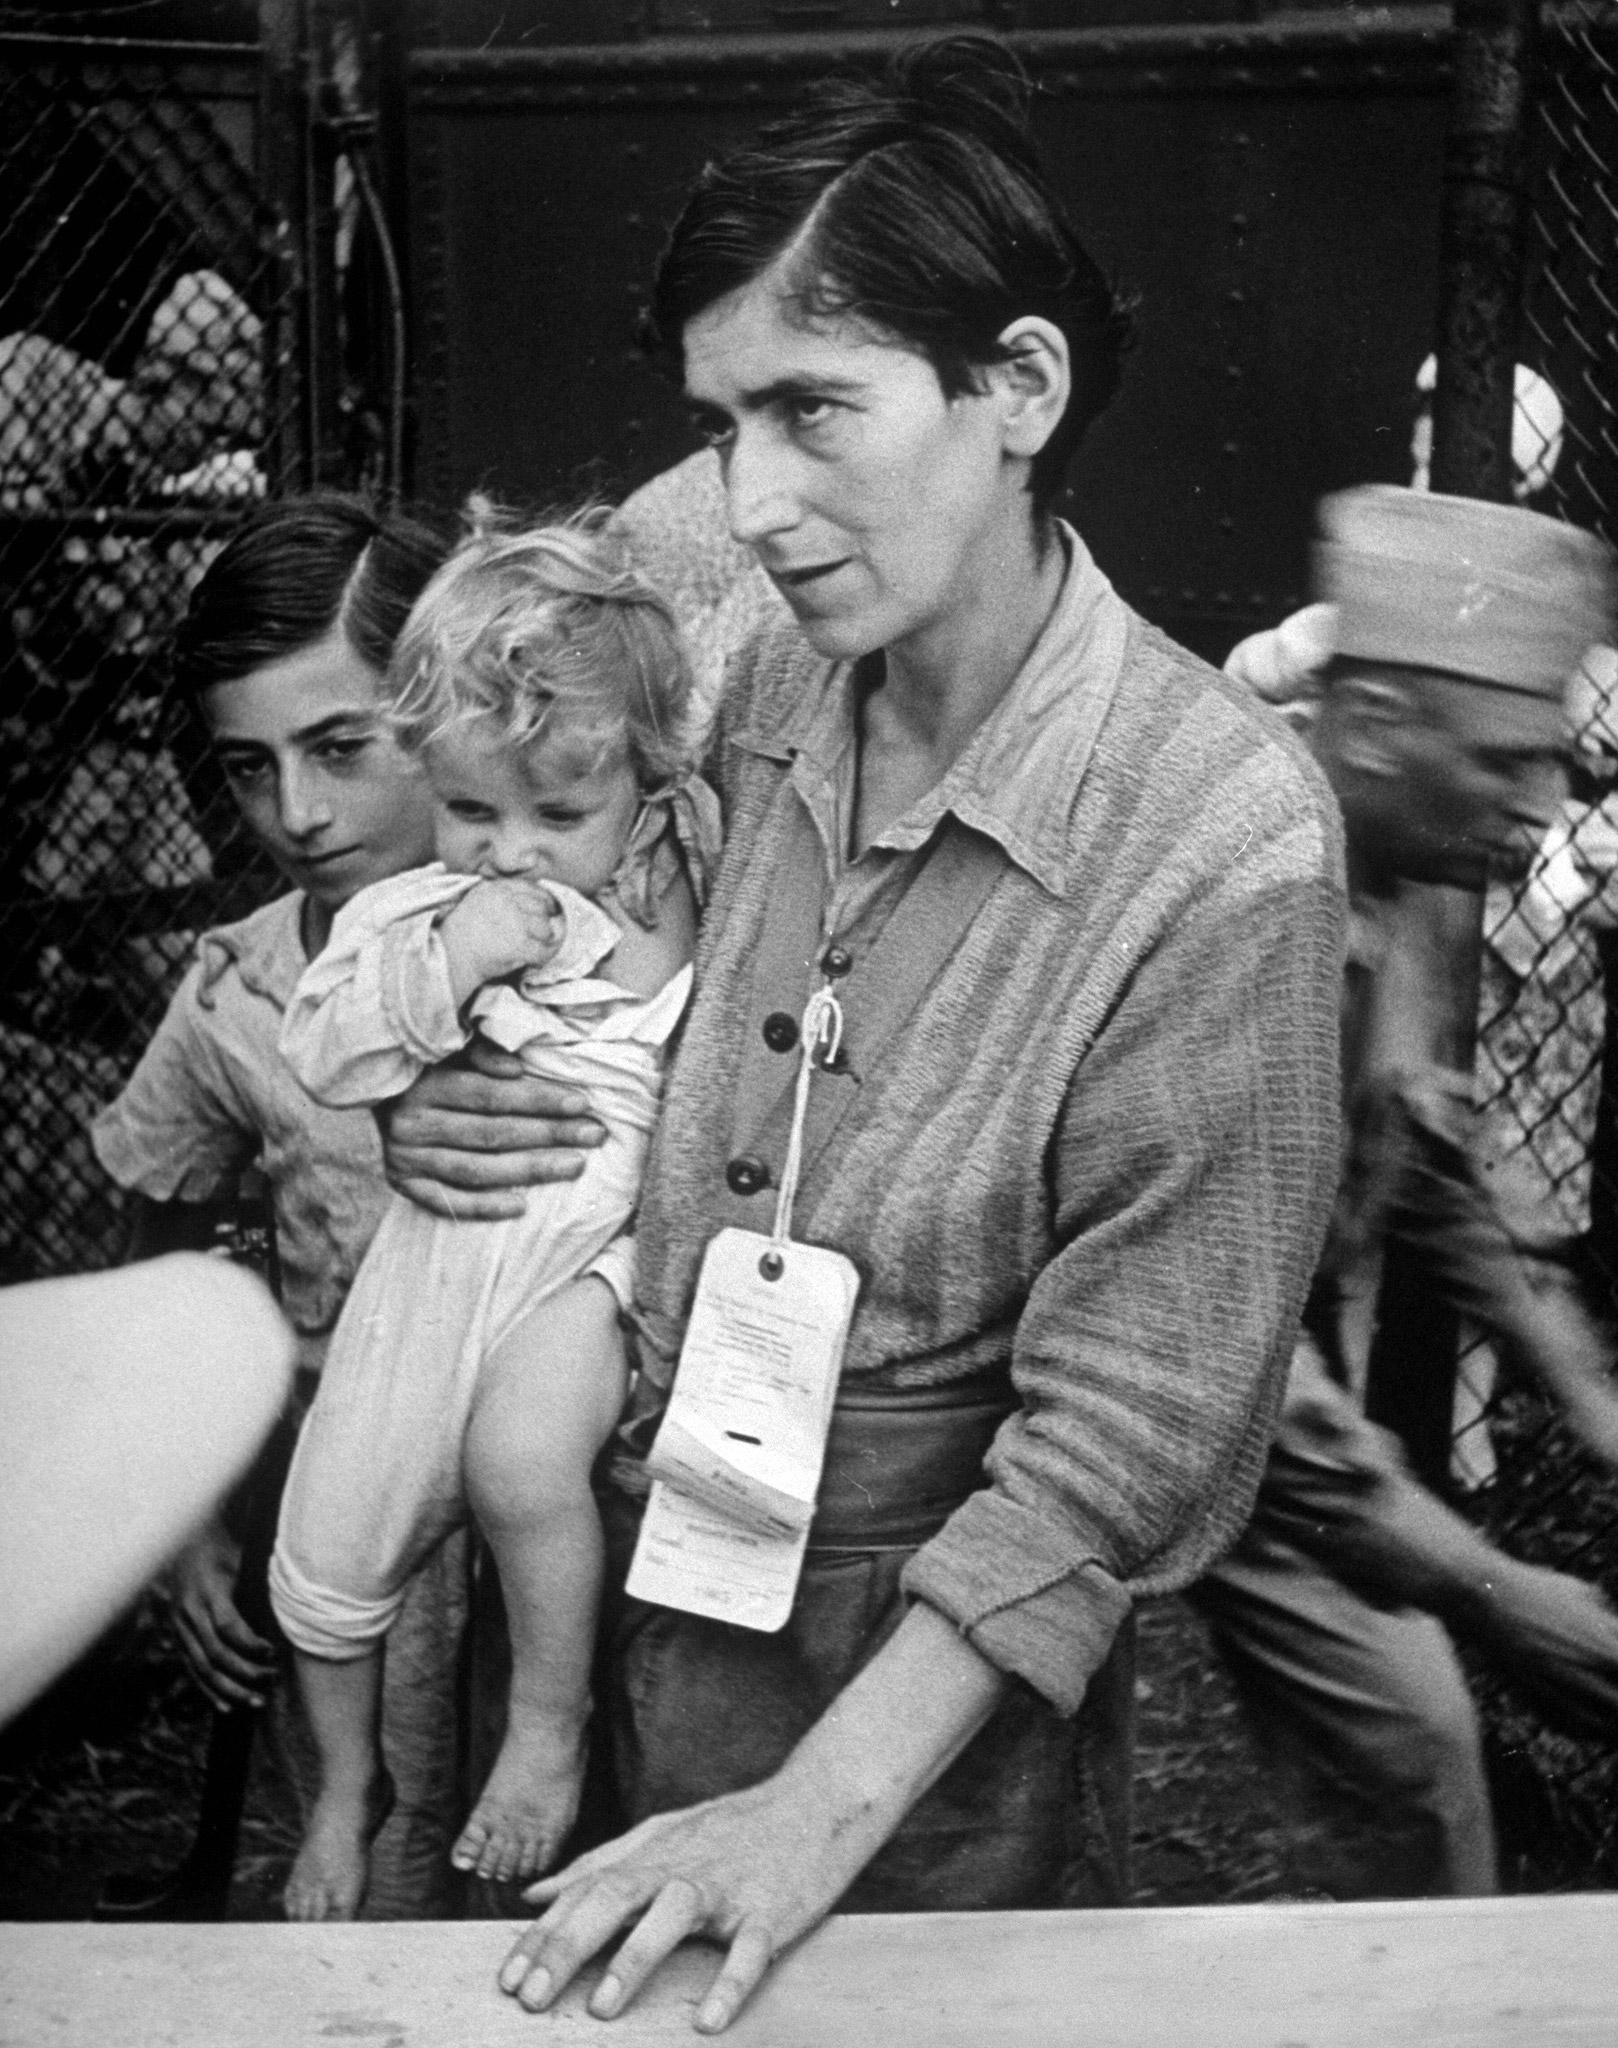 Swiss Jew Eva Bass, formerly a nightclub singer in Paris, entering refugee camp at Fort Ontario, with her children Yolanda and Joachim, whom she carried on a 60-km trek through the fighting lines to reach the American transport ship Henry Gibbins. 1944.